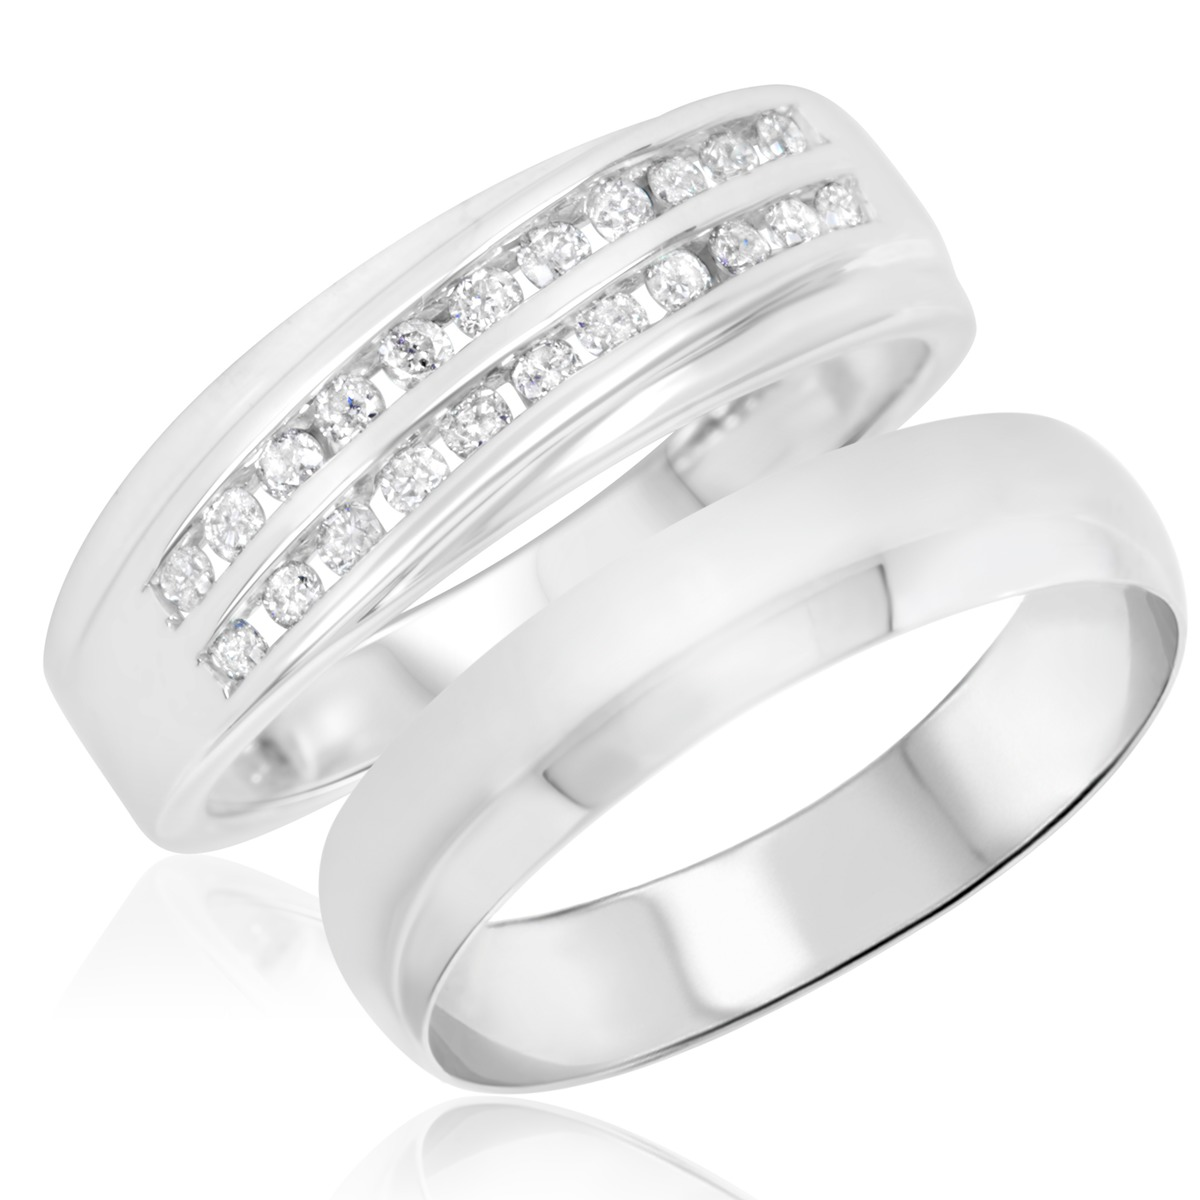 It is an image of Affordable Wedding Band Sets - Wedding Band Sets